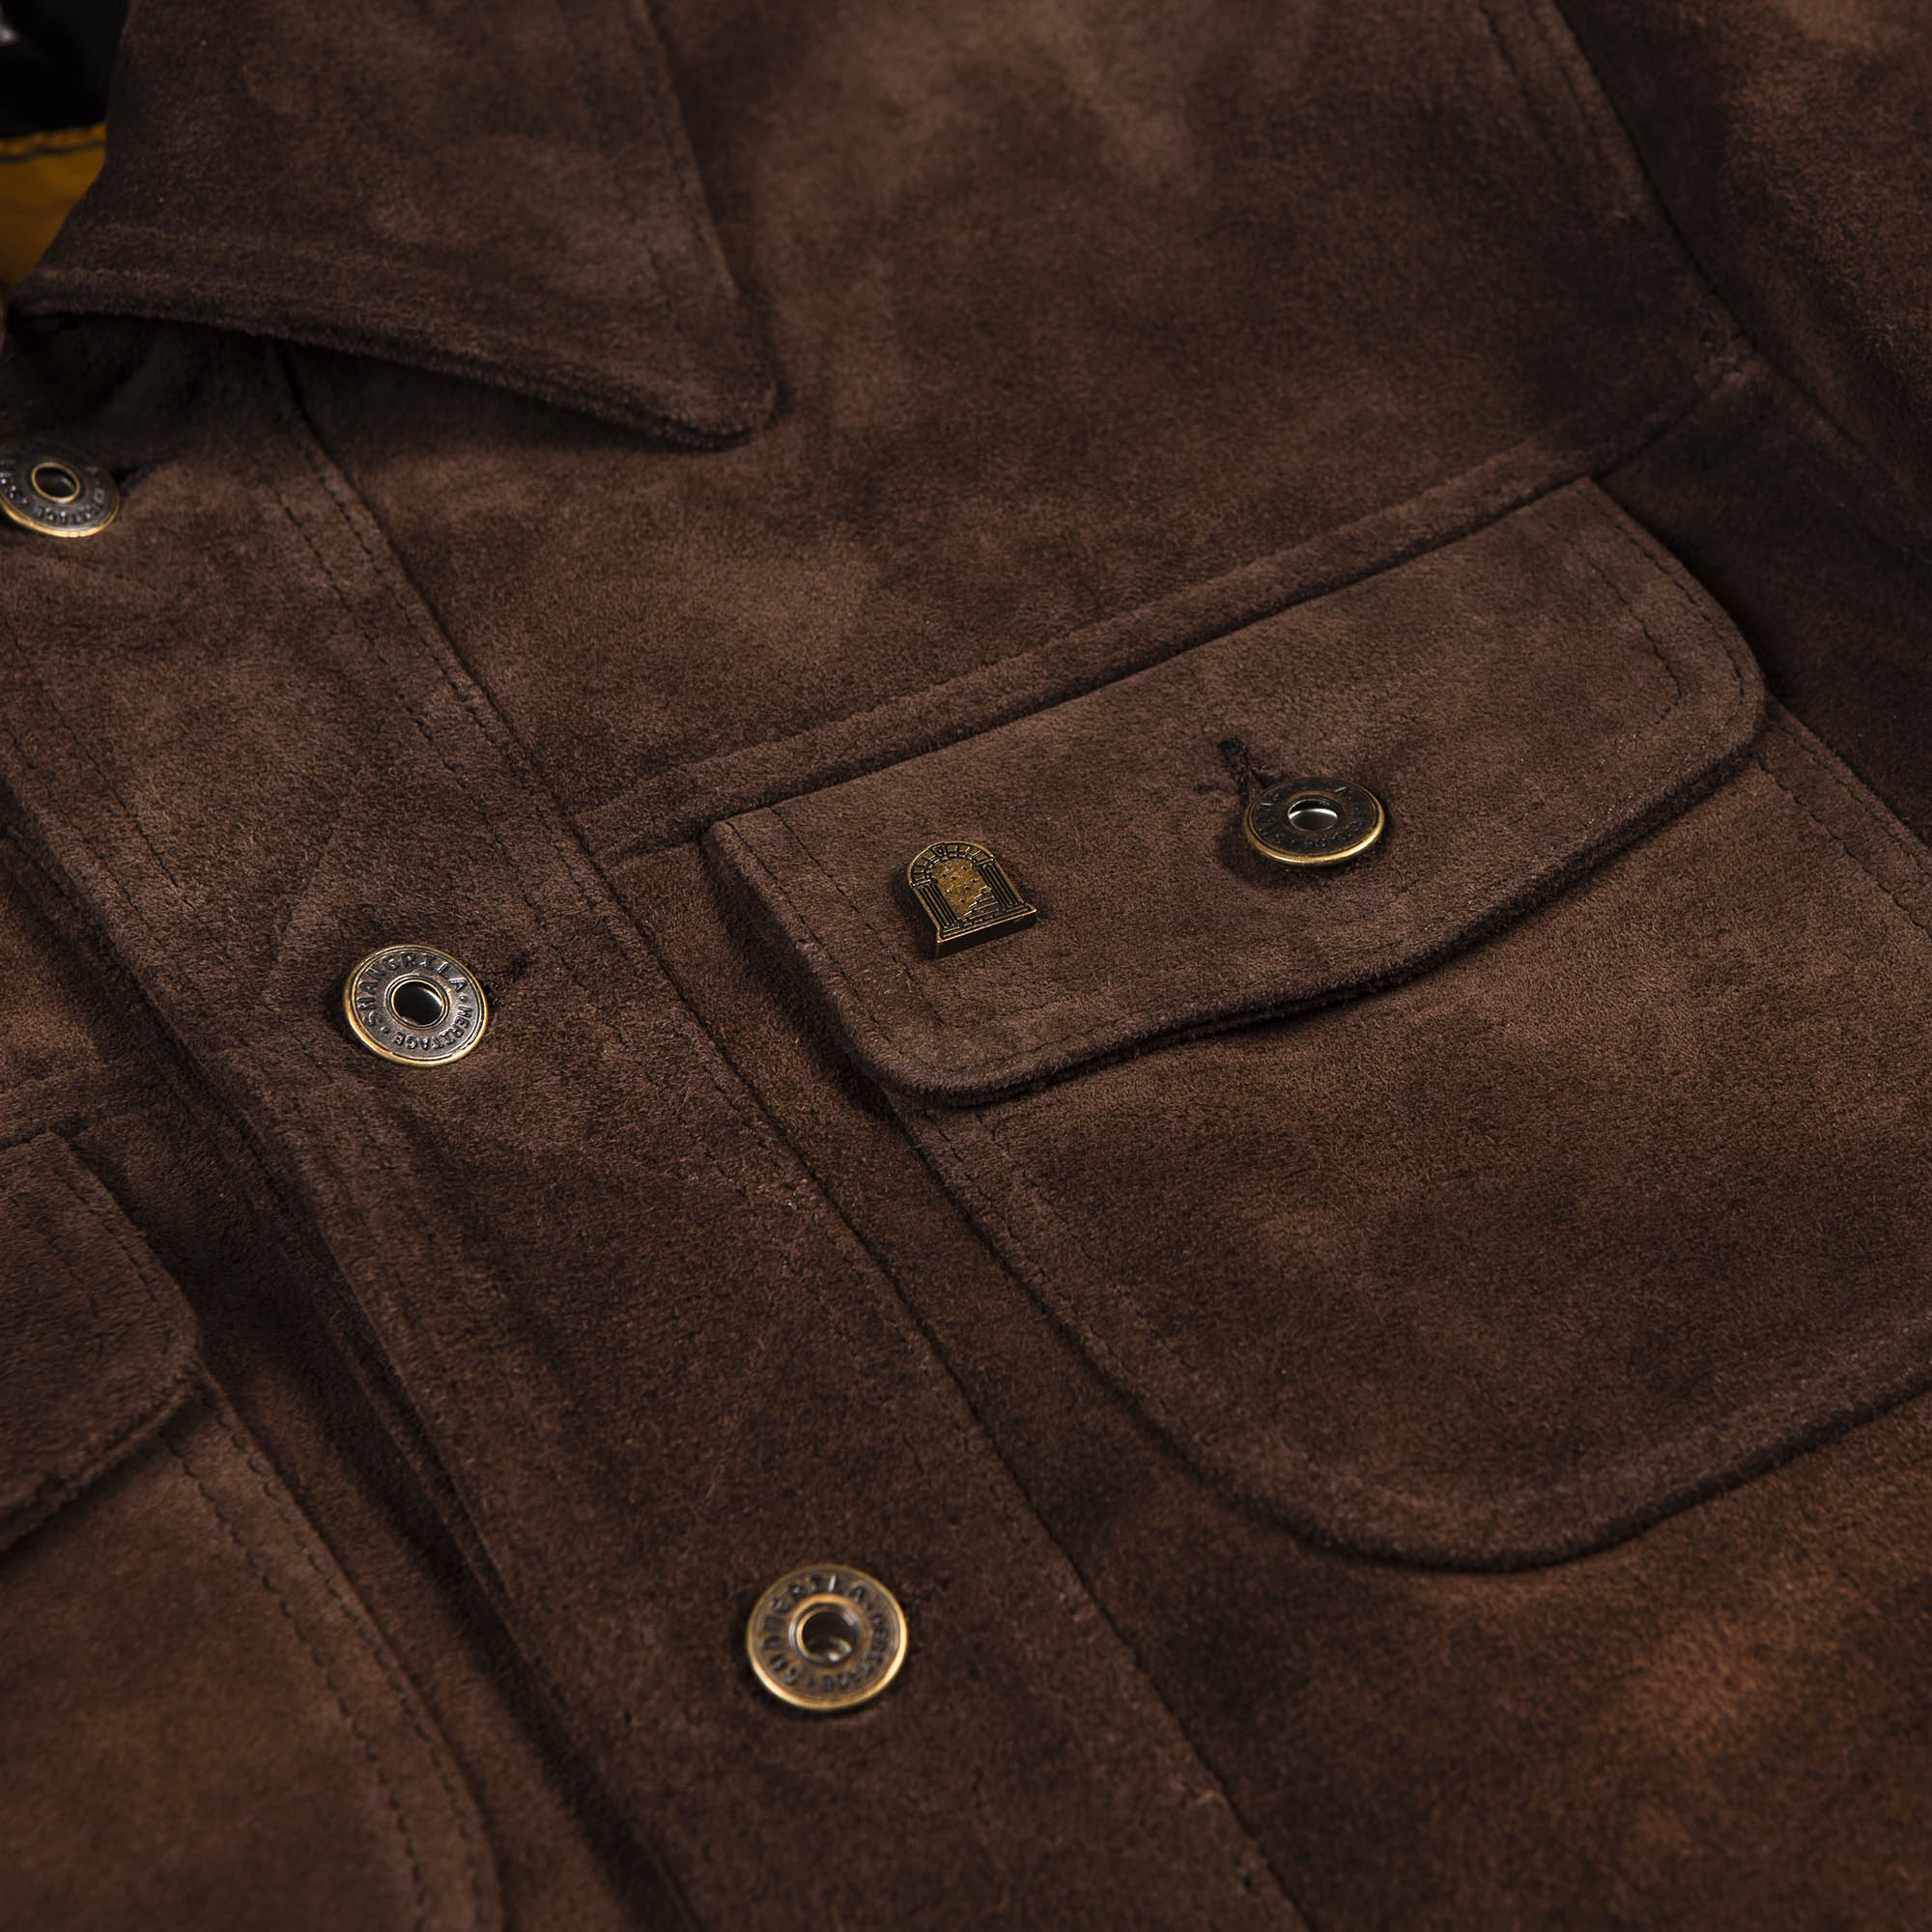 shangri-la-heritage-terracotta-brown-calfskin-suede-jacket-still-life-front-chest-pocket